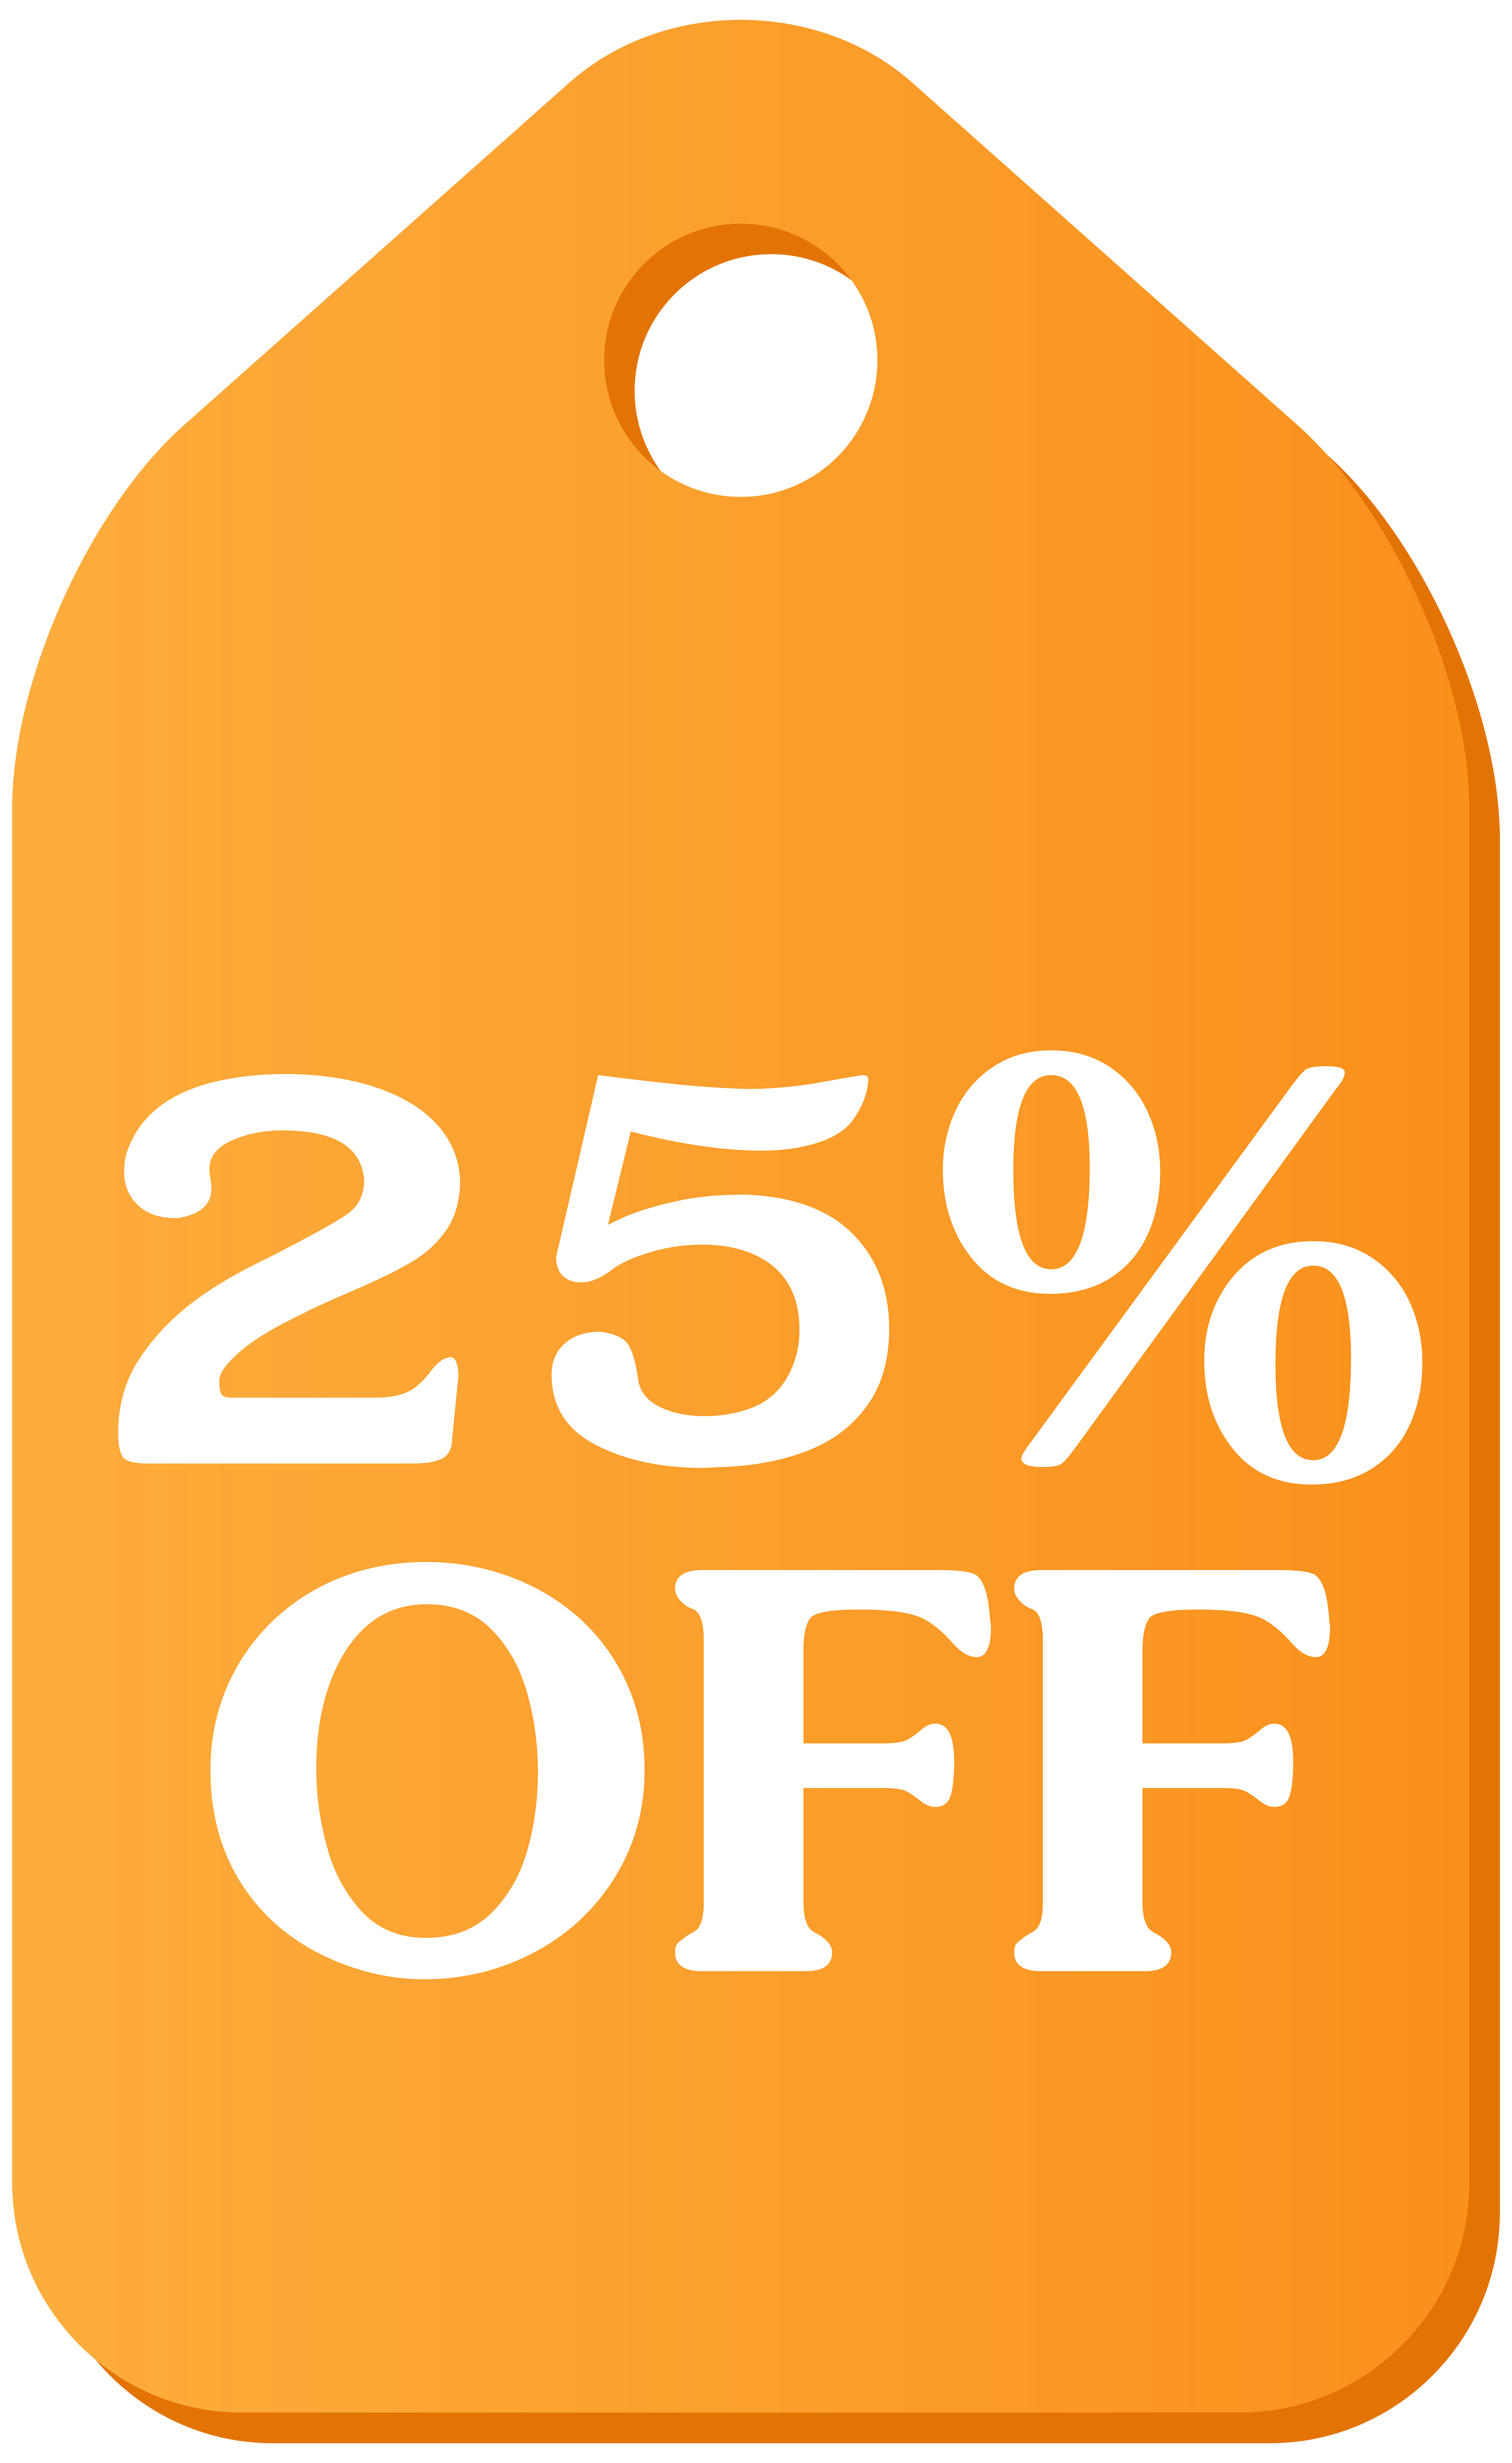 Orange Discount Tag Free Download Image PNG Image